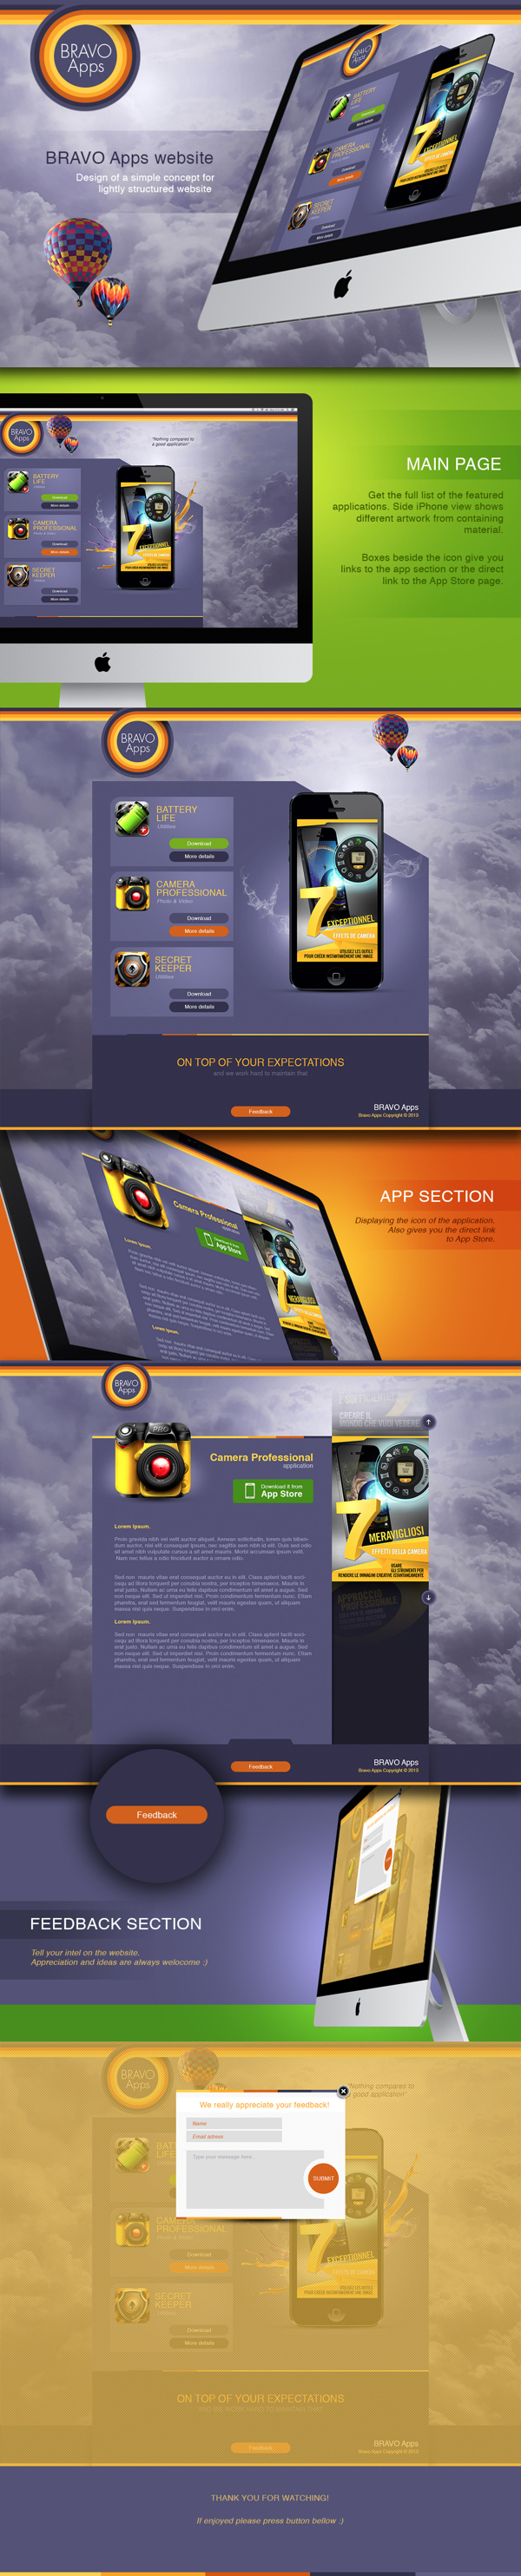 Bravo App website by Eugene Zolotco, via Behance (With